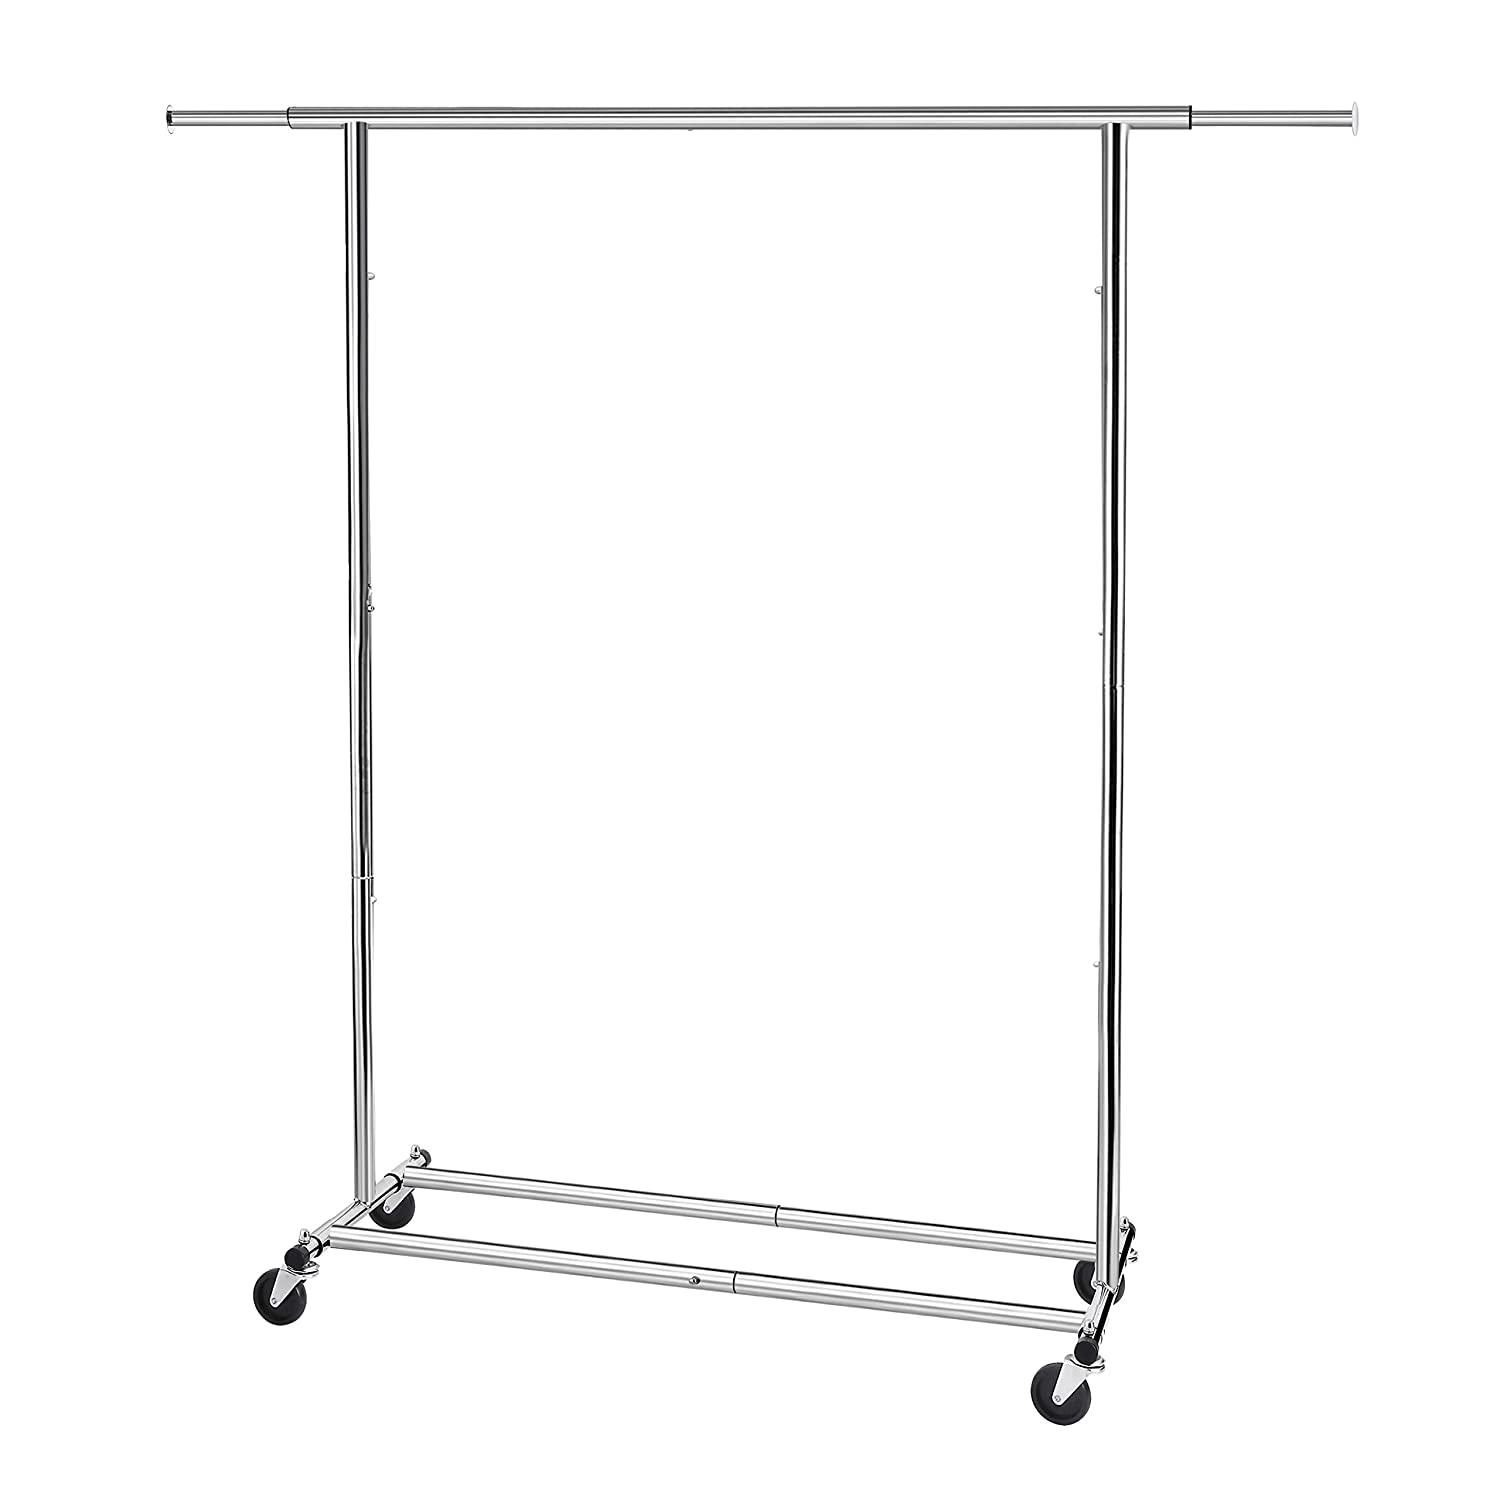 Simple Trending Clothing Garment Rack with Wheels, Extendable & Collapsible, Capacity 150 lbs, Chrome